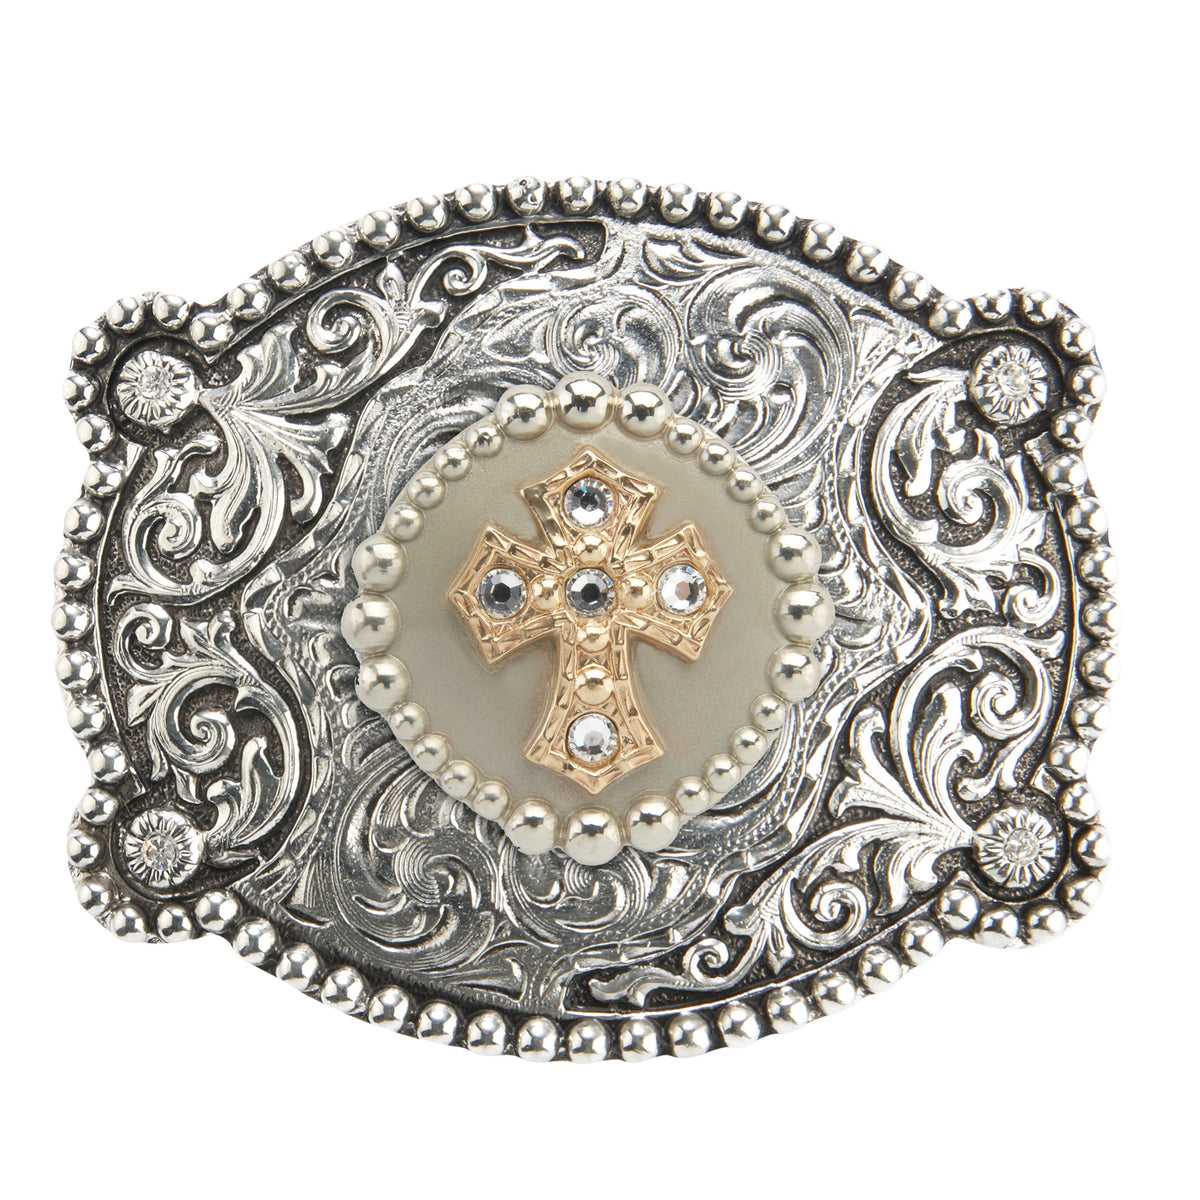 Scalloped Motif Buckle with Cross Medallion